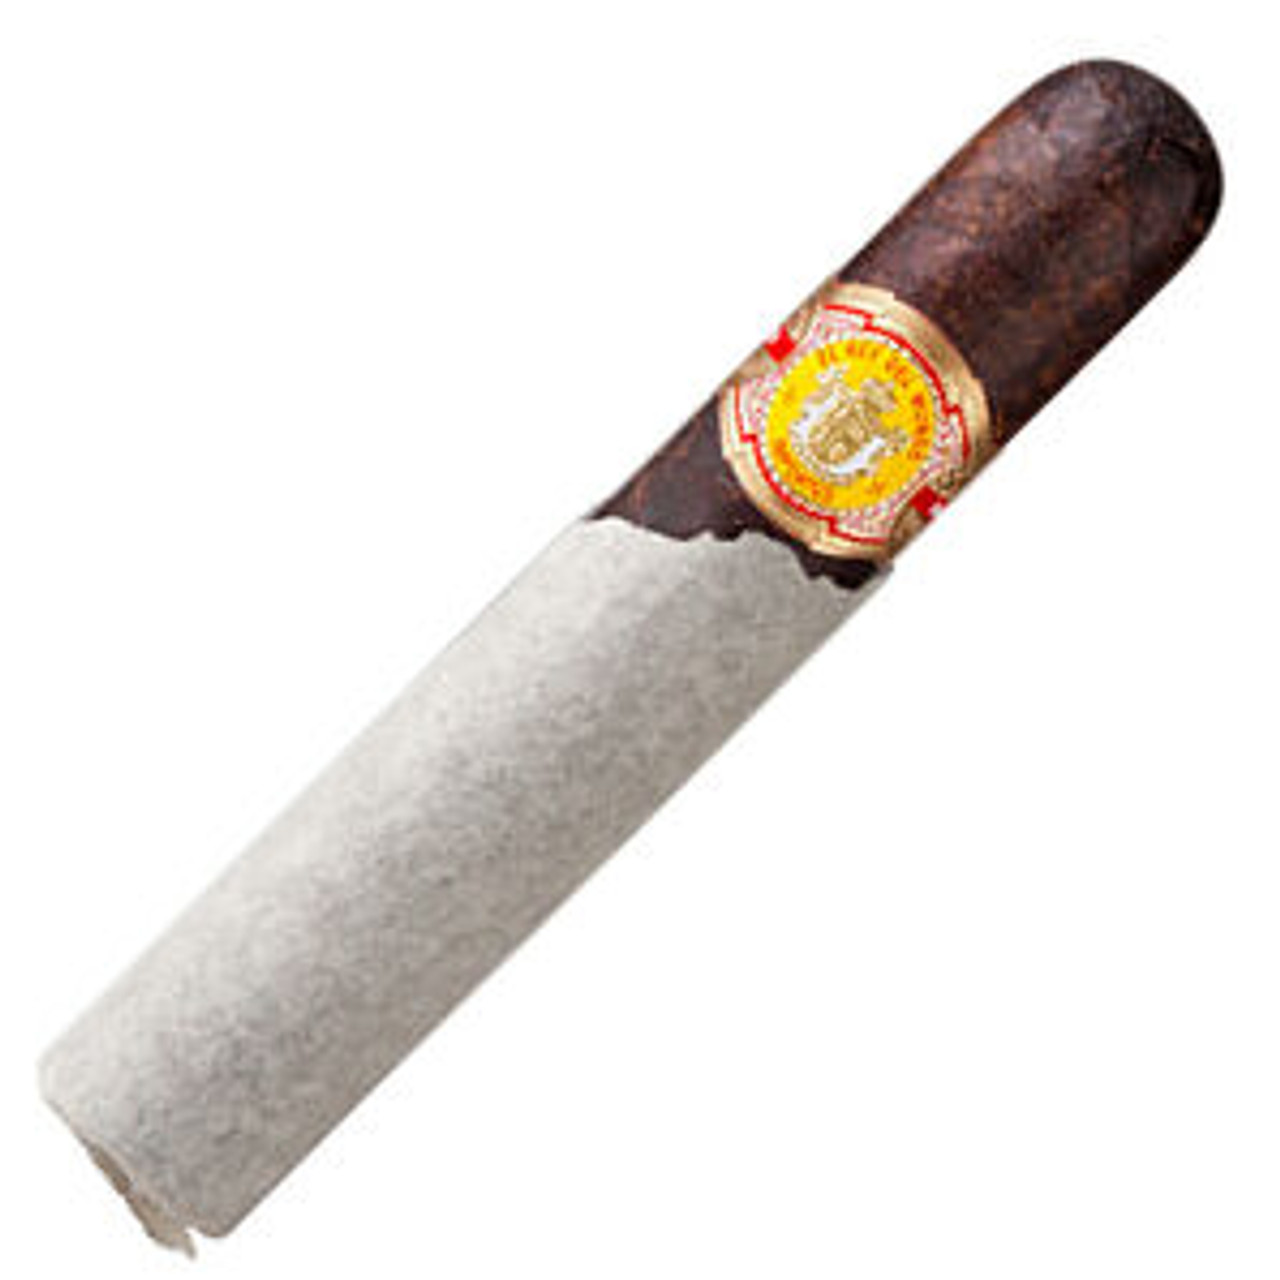 El Rey del Mundo Robusto Cigars - 5 x 54 (Box of 20)